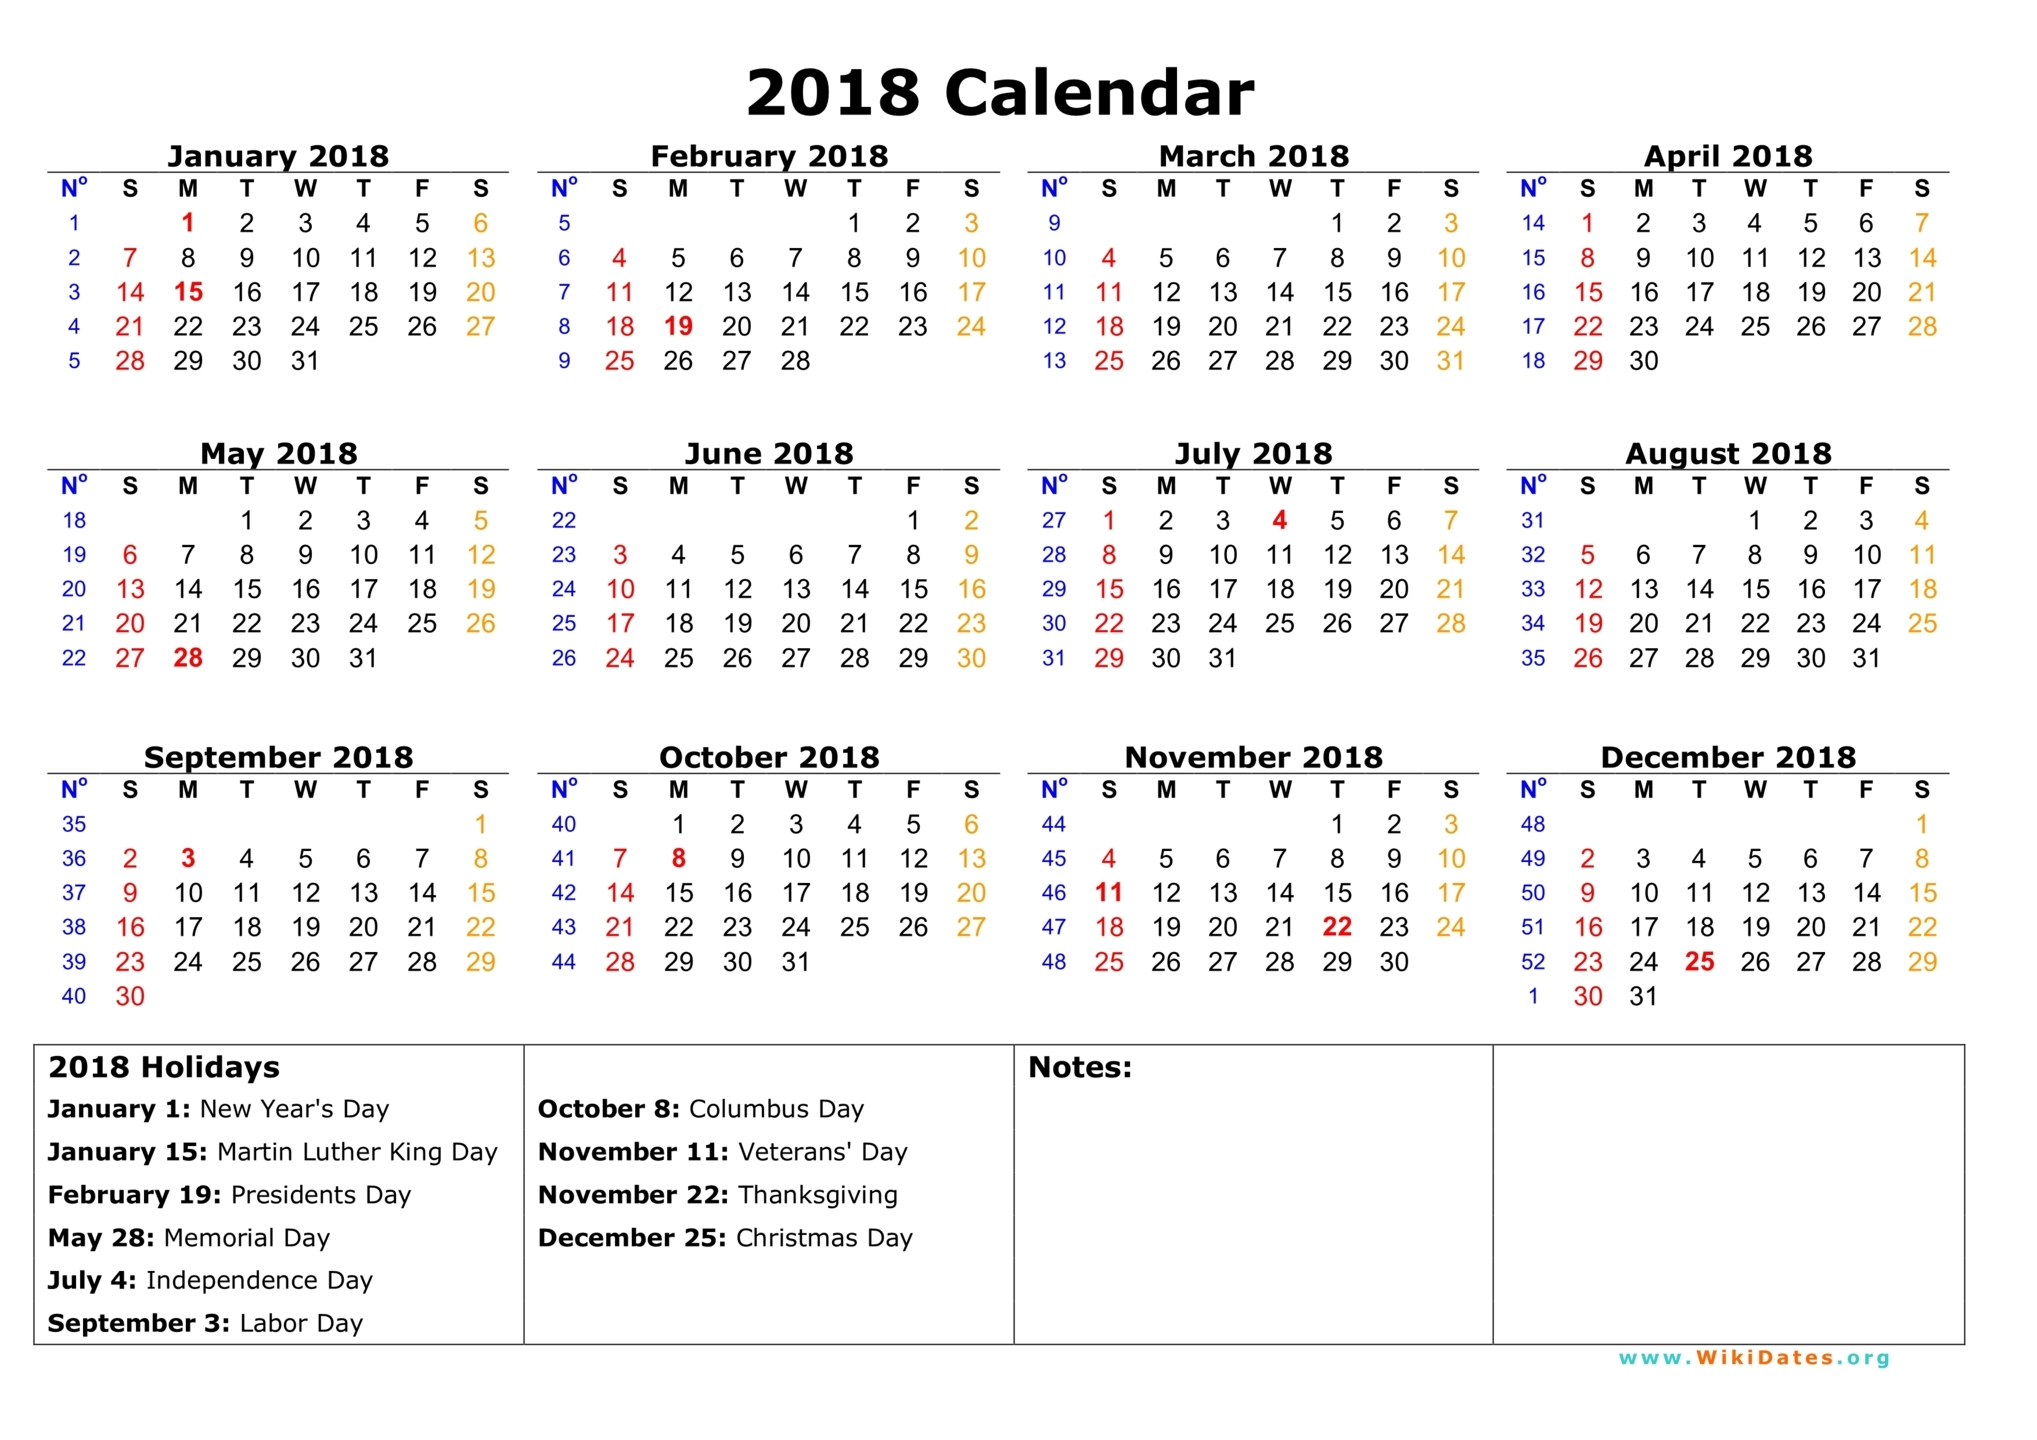 2018 Calendar With Holidays Printable | printable calendar templates